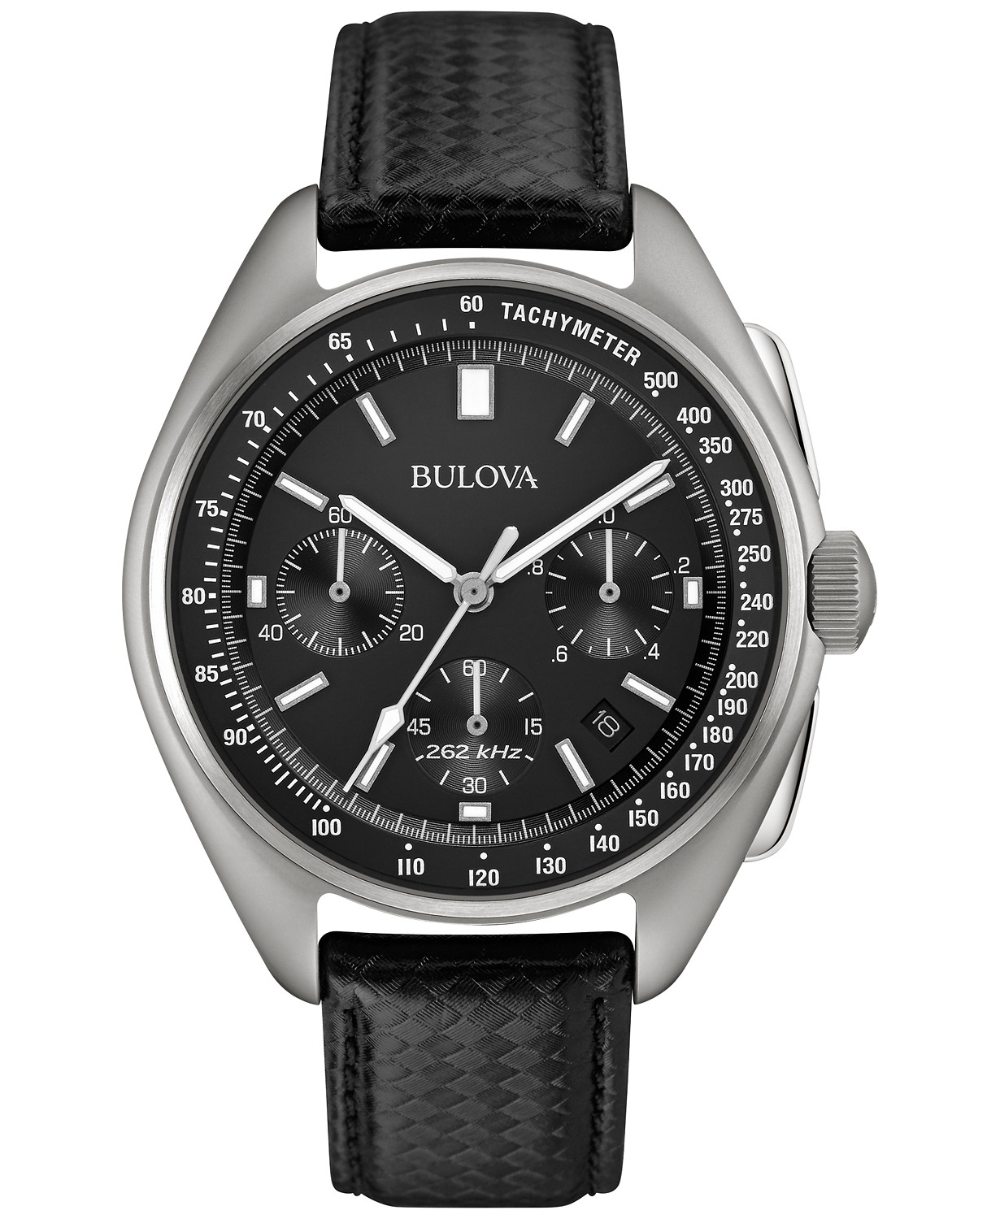 Bulova LIMITED EDITION Men's Special Edition Lunar Pilot Chronograph Black Leather Strap & Nylon Strap Watch 45mm 96B251 & Reviews   All Fine Jewelry   Jewelry & Watches   Macy's Gallery